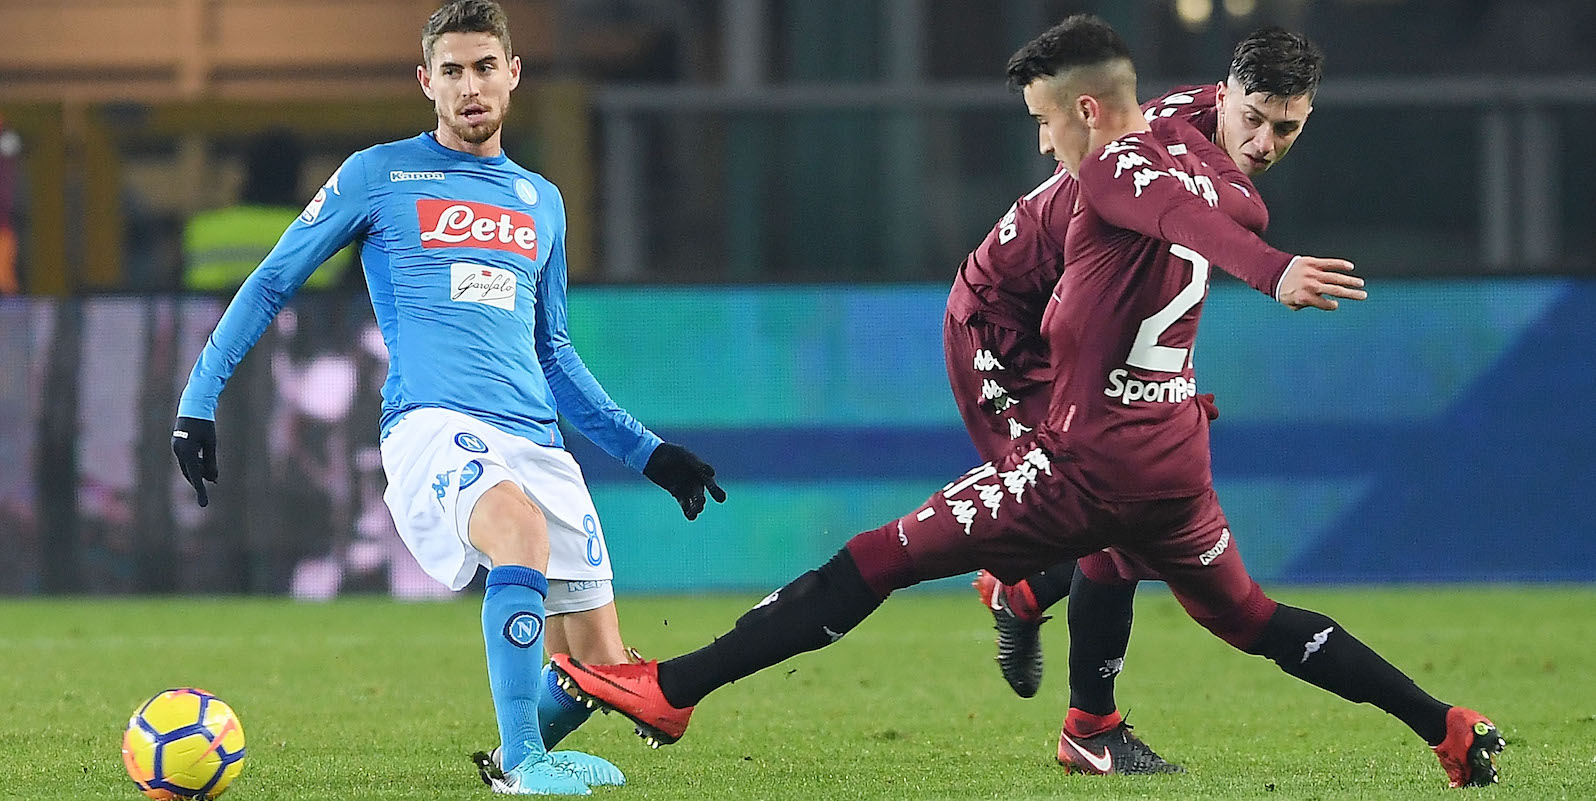 Manchester United target Jorginho's agent confirms he will listen to offers in the summer